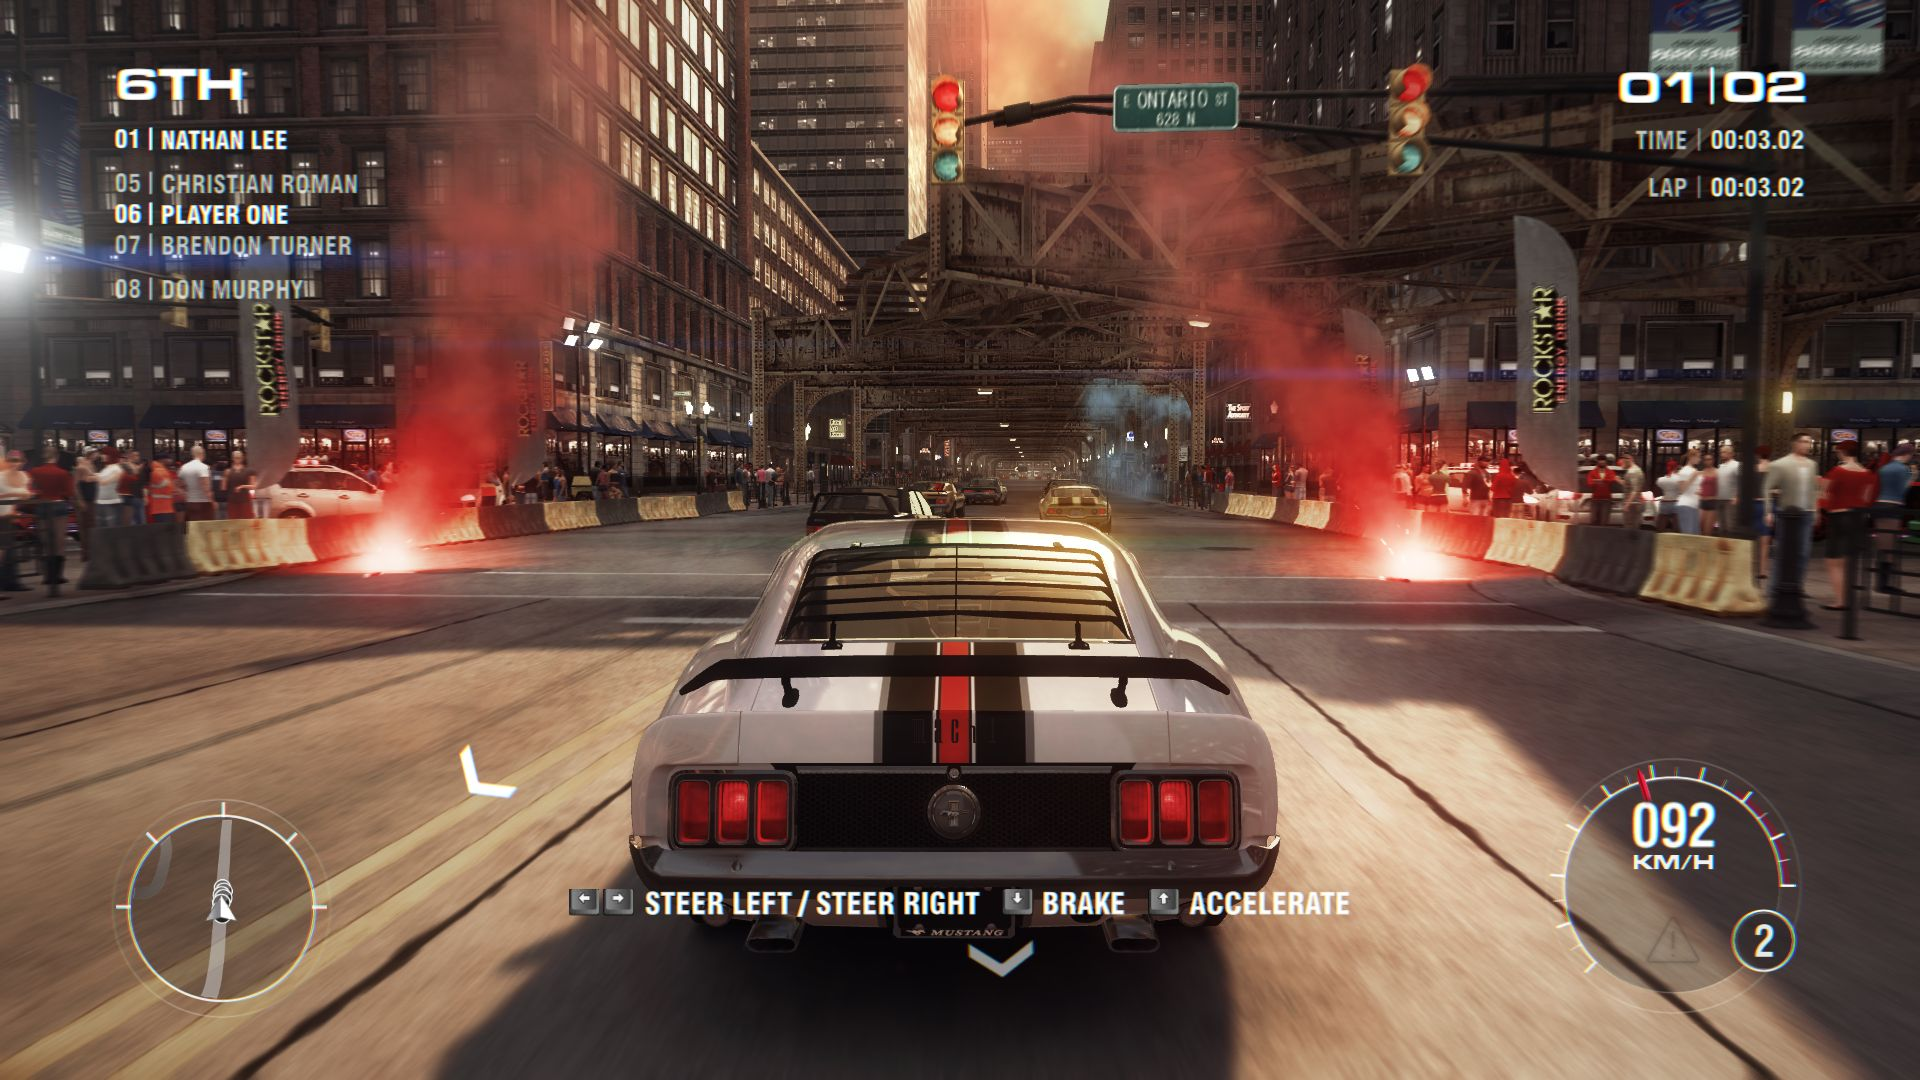 GRID 2 Benchmarked  NotebookChecknet Reviews